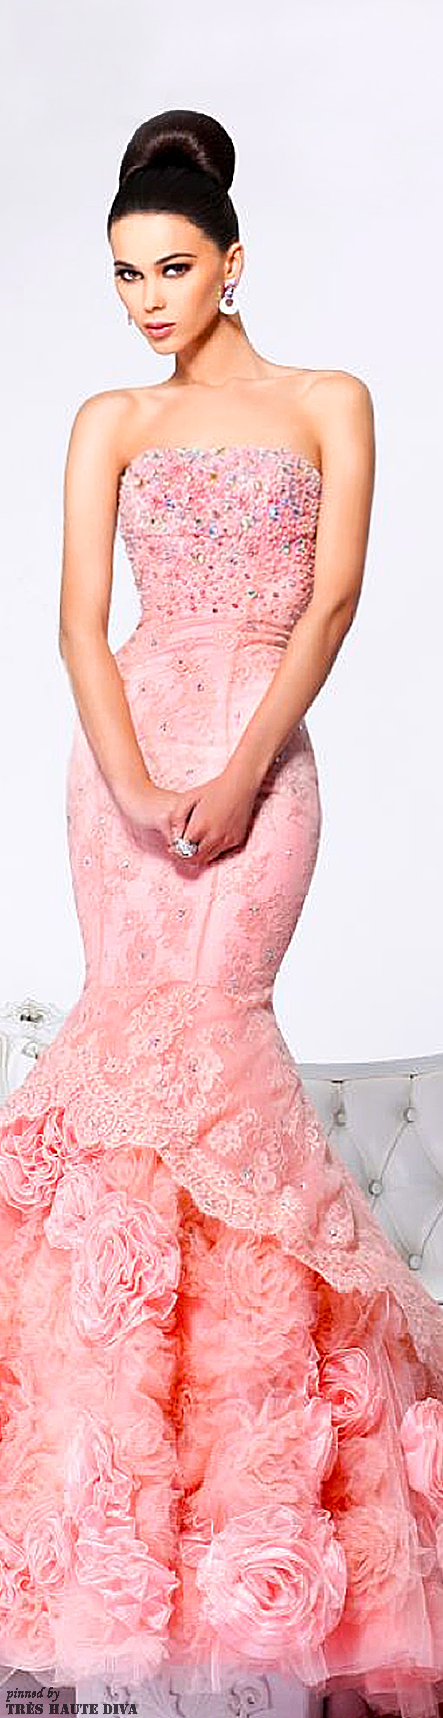 Sherri Hill ~*~PM | Garden Wedding in Coral PInk, Peach and Yellow ...